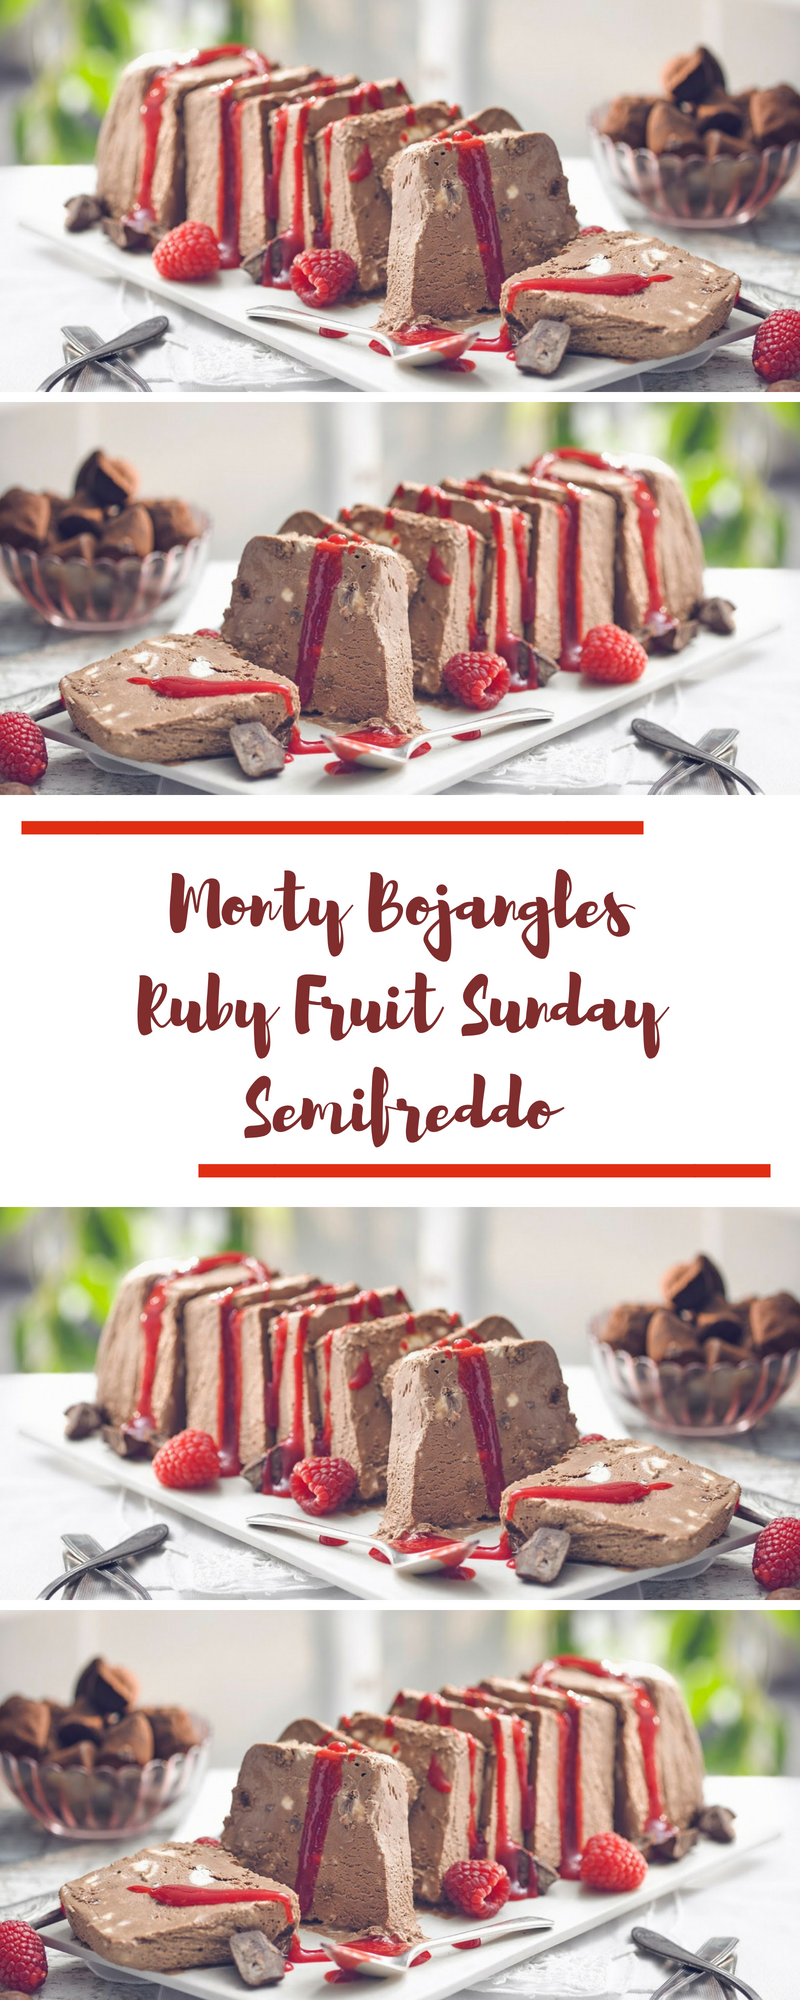 Monty Bojangles Ruby Fruit Sunday Semifreddo